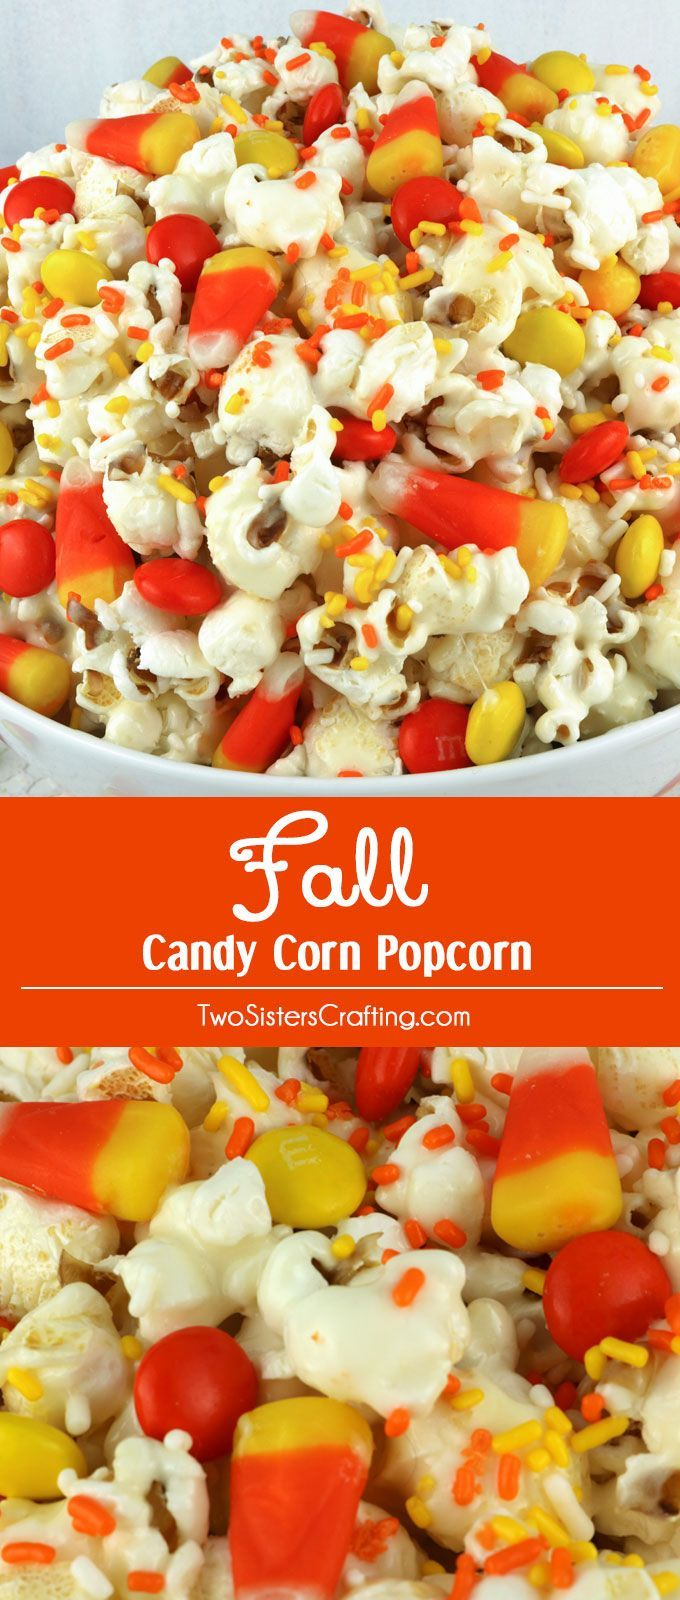 Ladies Fall Luncheon Ideas Ehow - Fall candy corn popcorn